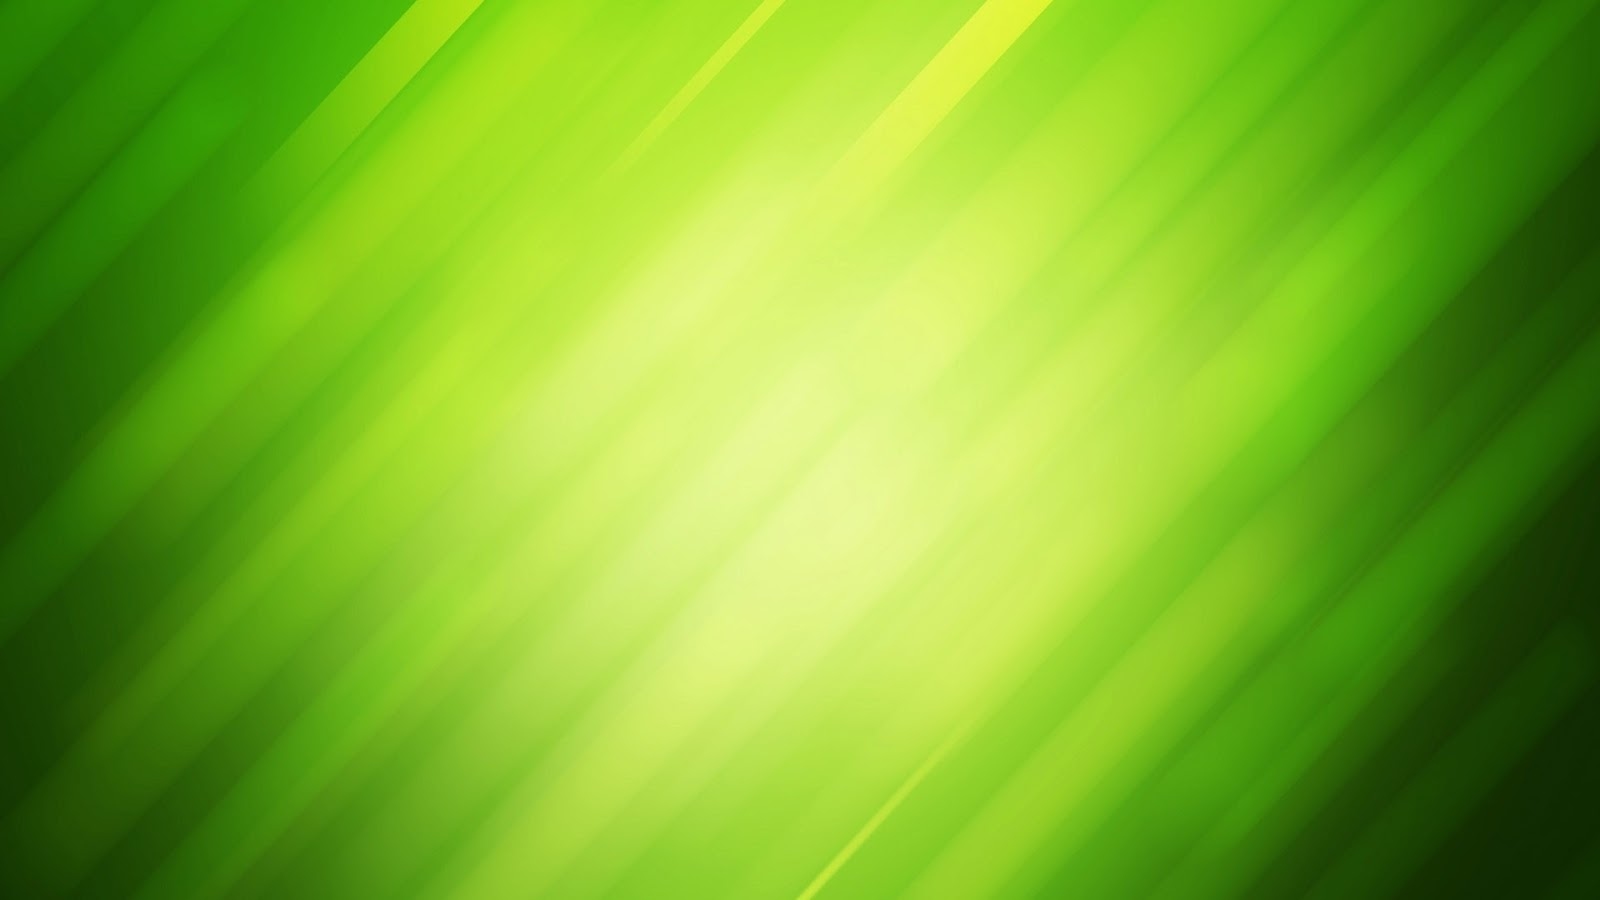 Green Background Design Wallpaper Cool Green Abst...